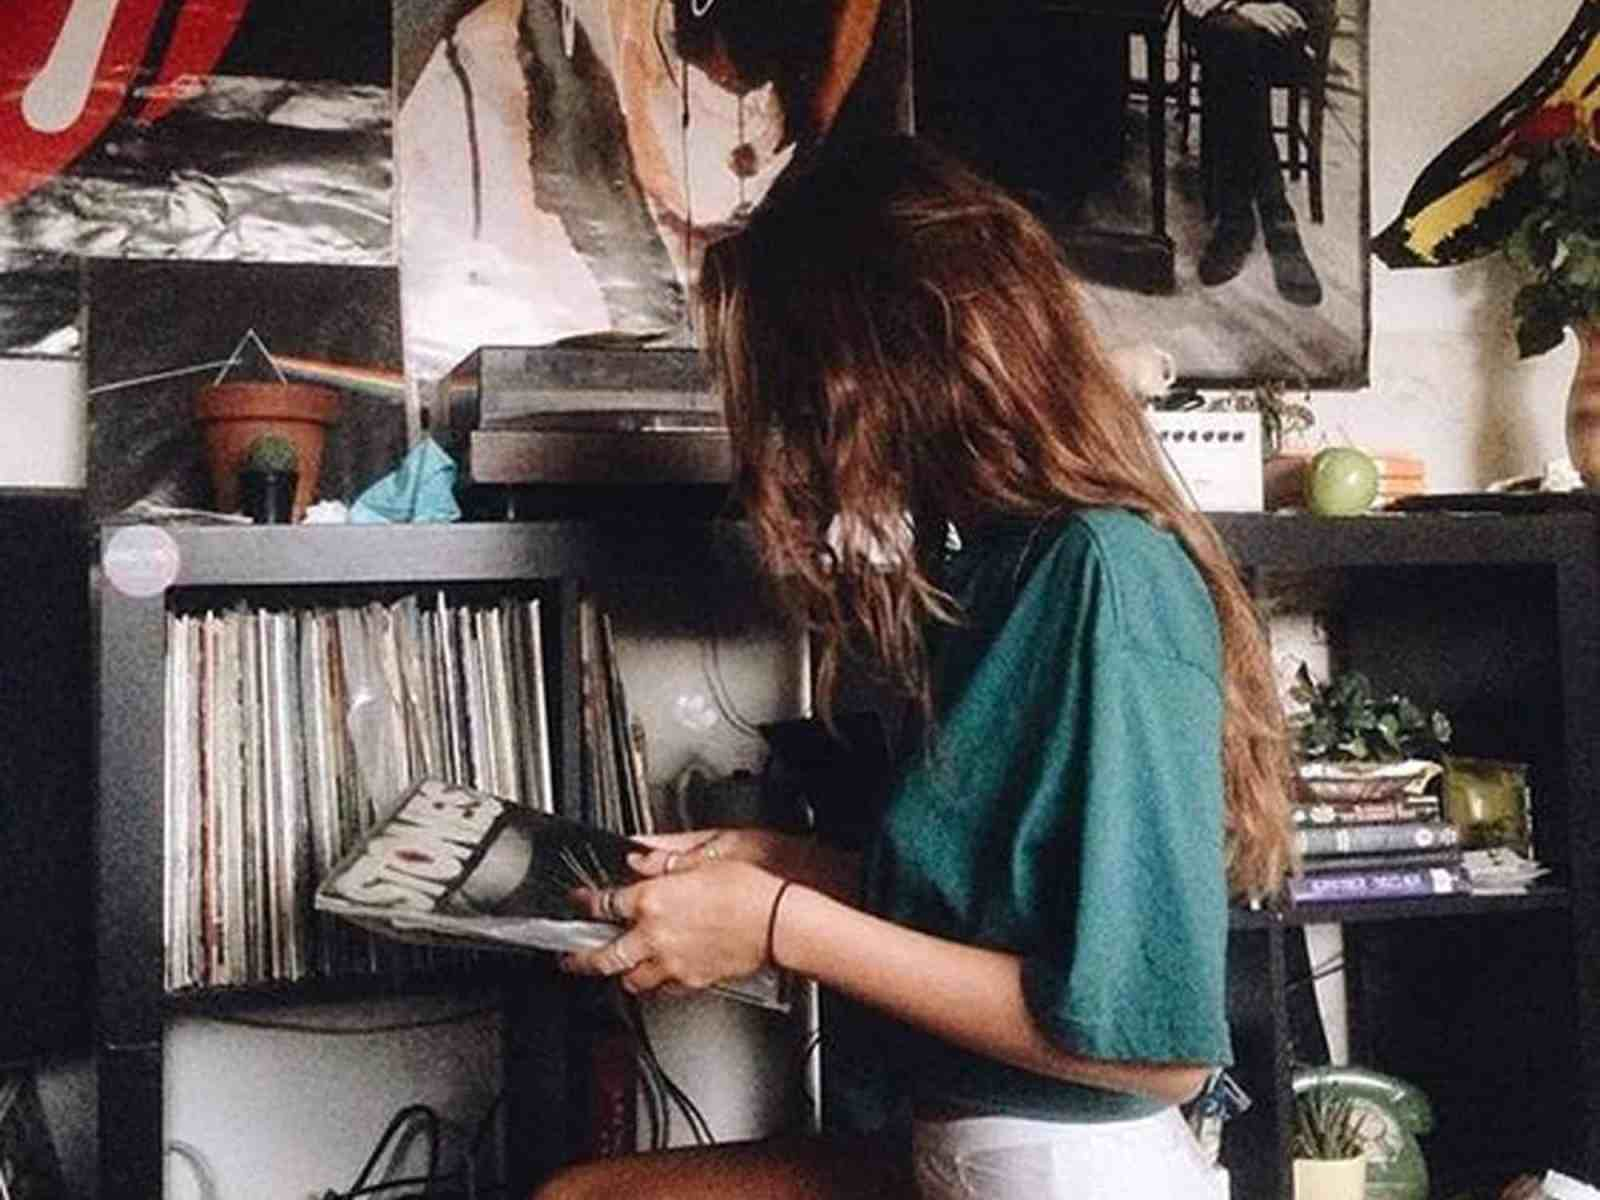 Many young people are into older music since they were exposed to it by their parents. For these people, there are certain challenges they face and things they experience as a result. Here's what happens when you are ayoung person who loves old music.